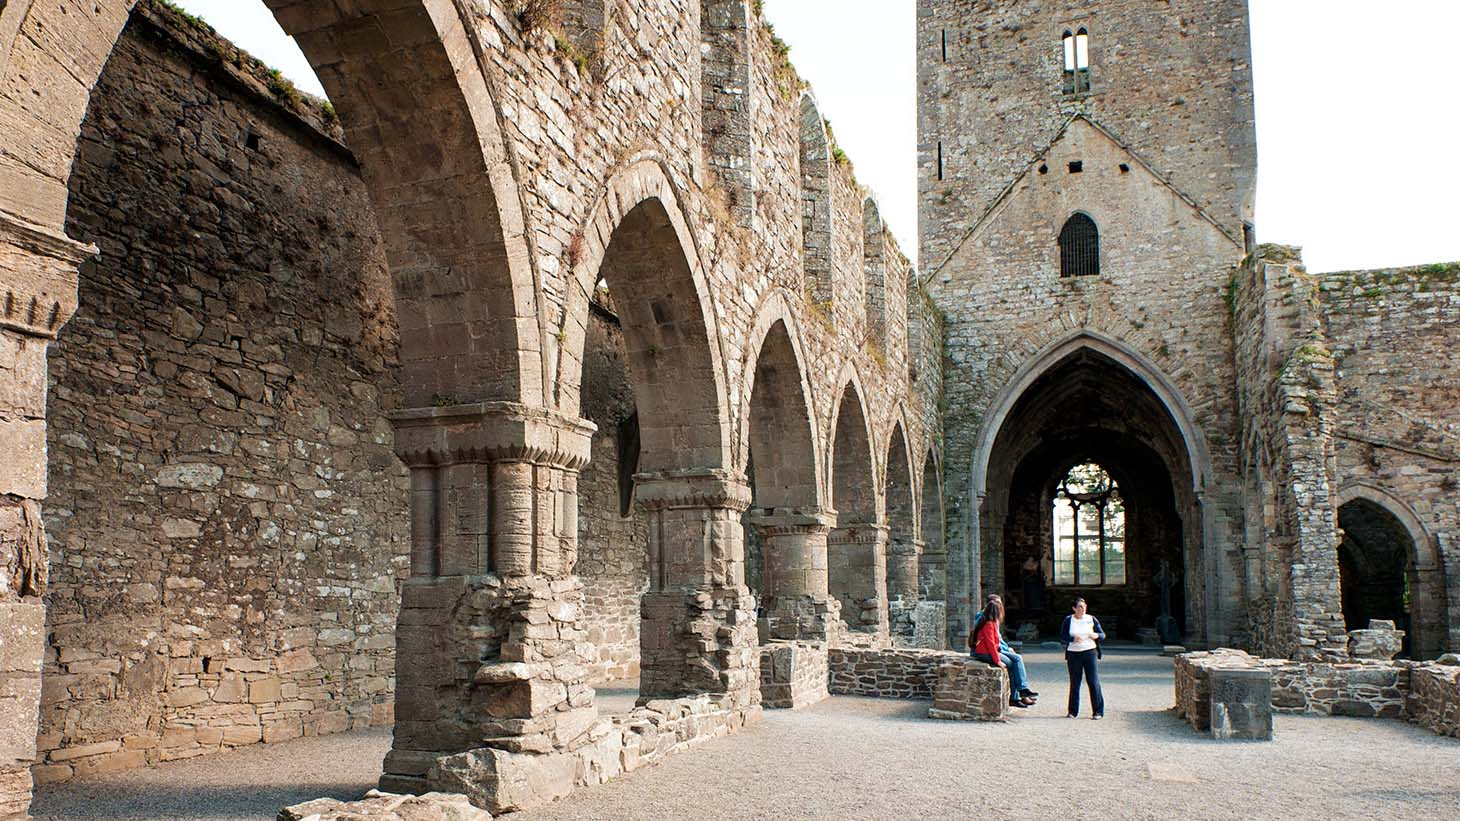 Explore the remains of Jerpoint Abbey.